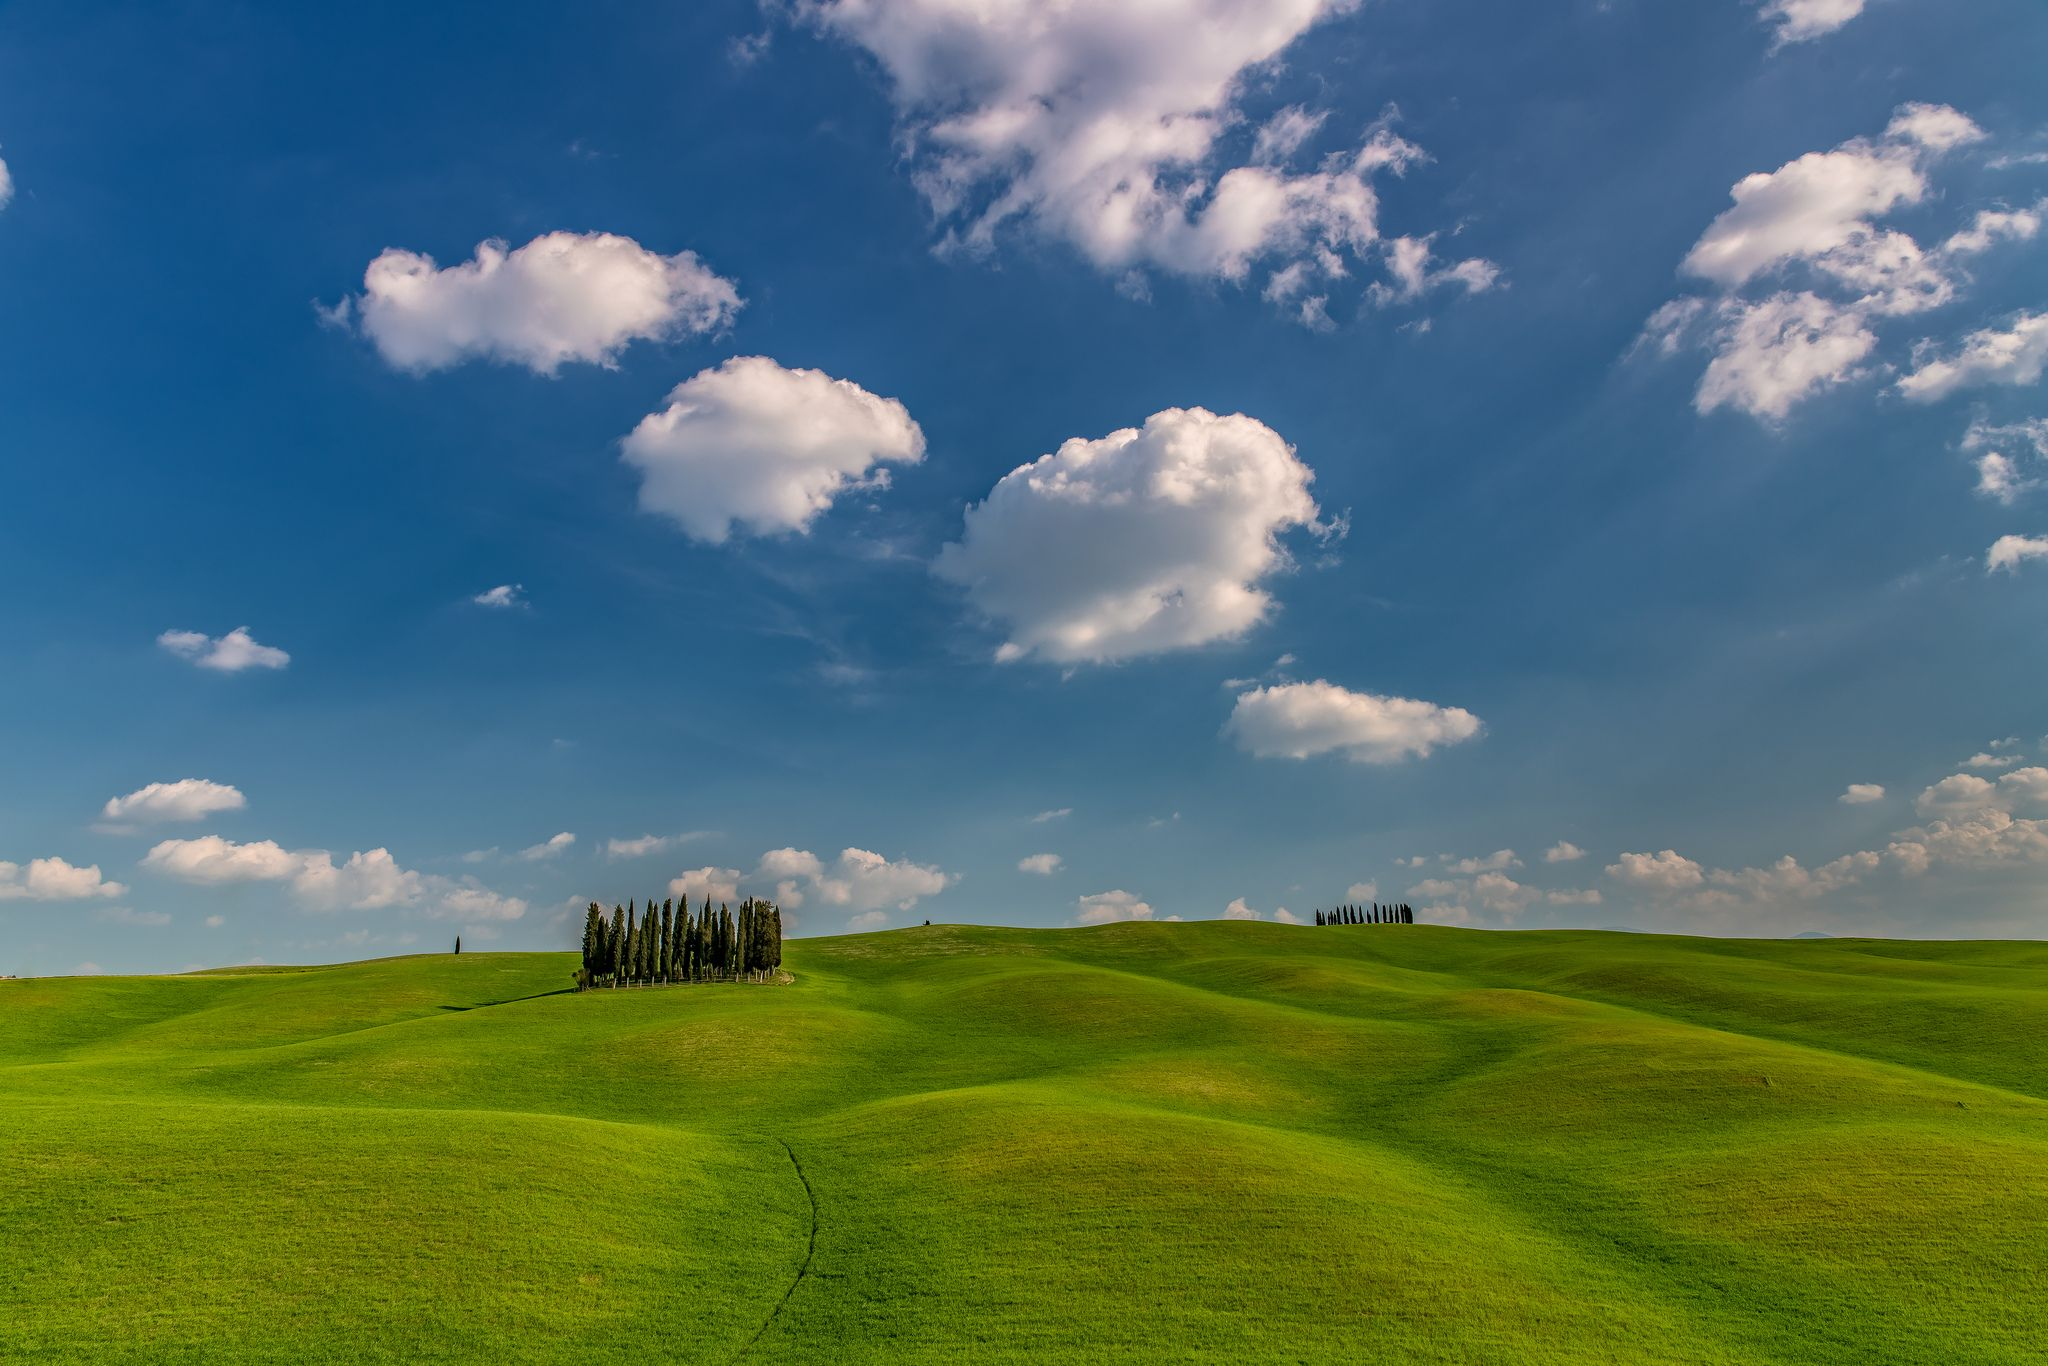 Spring in Tuscany Italy [2048x1366]. wallpaper/ background